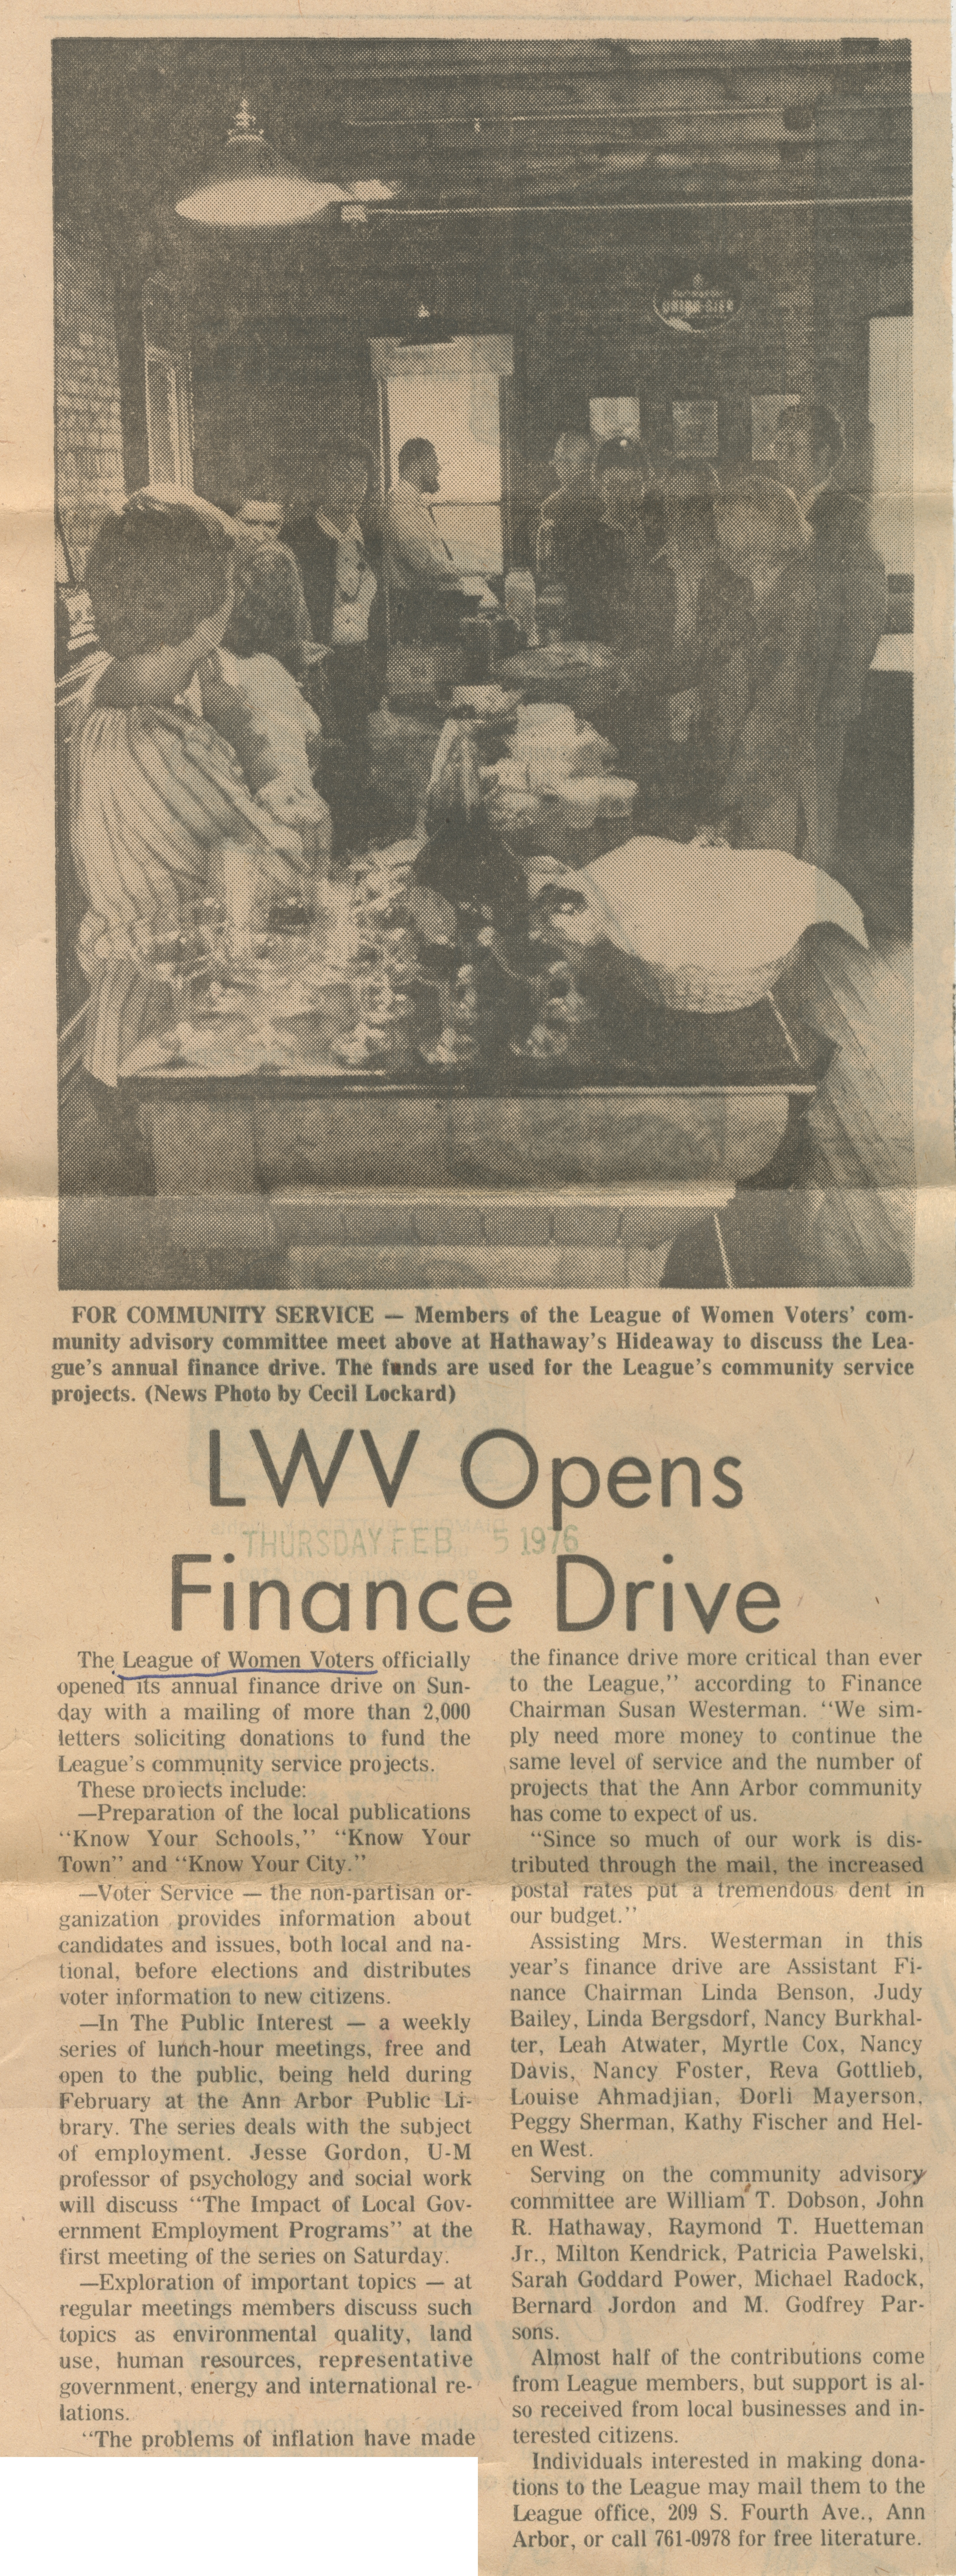 LWV Opens Finance Drive image